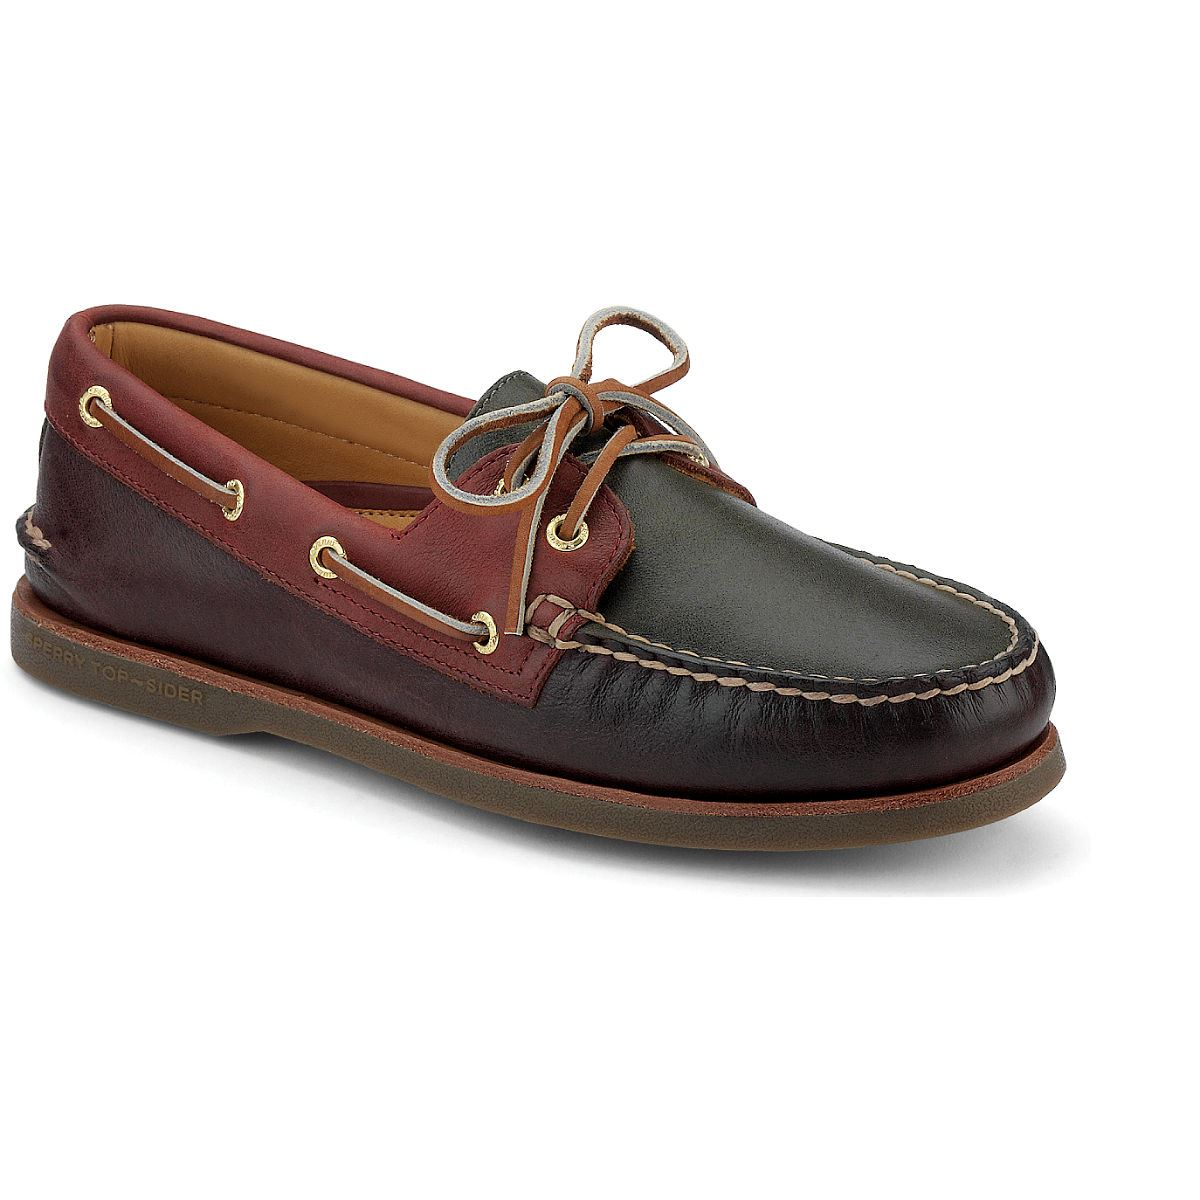 Gold Cup Authentic Original Cross Lace Boat Shoe